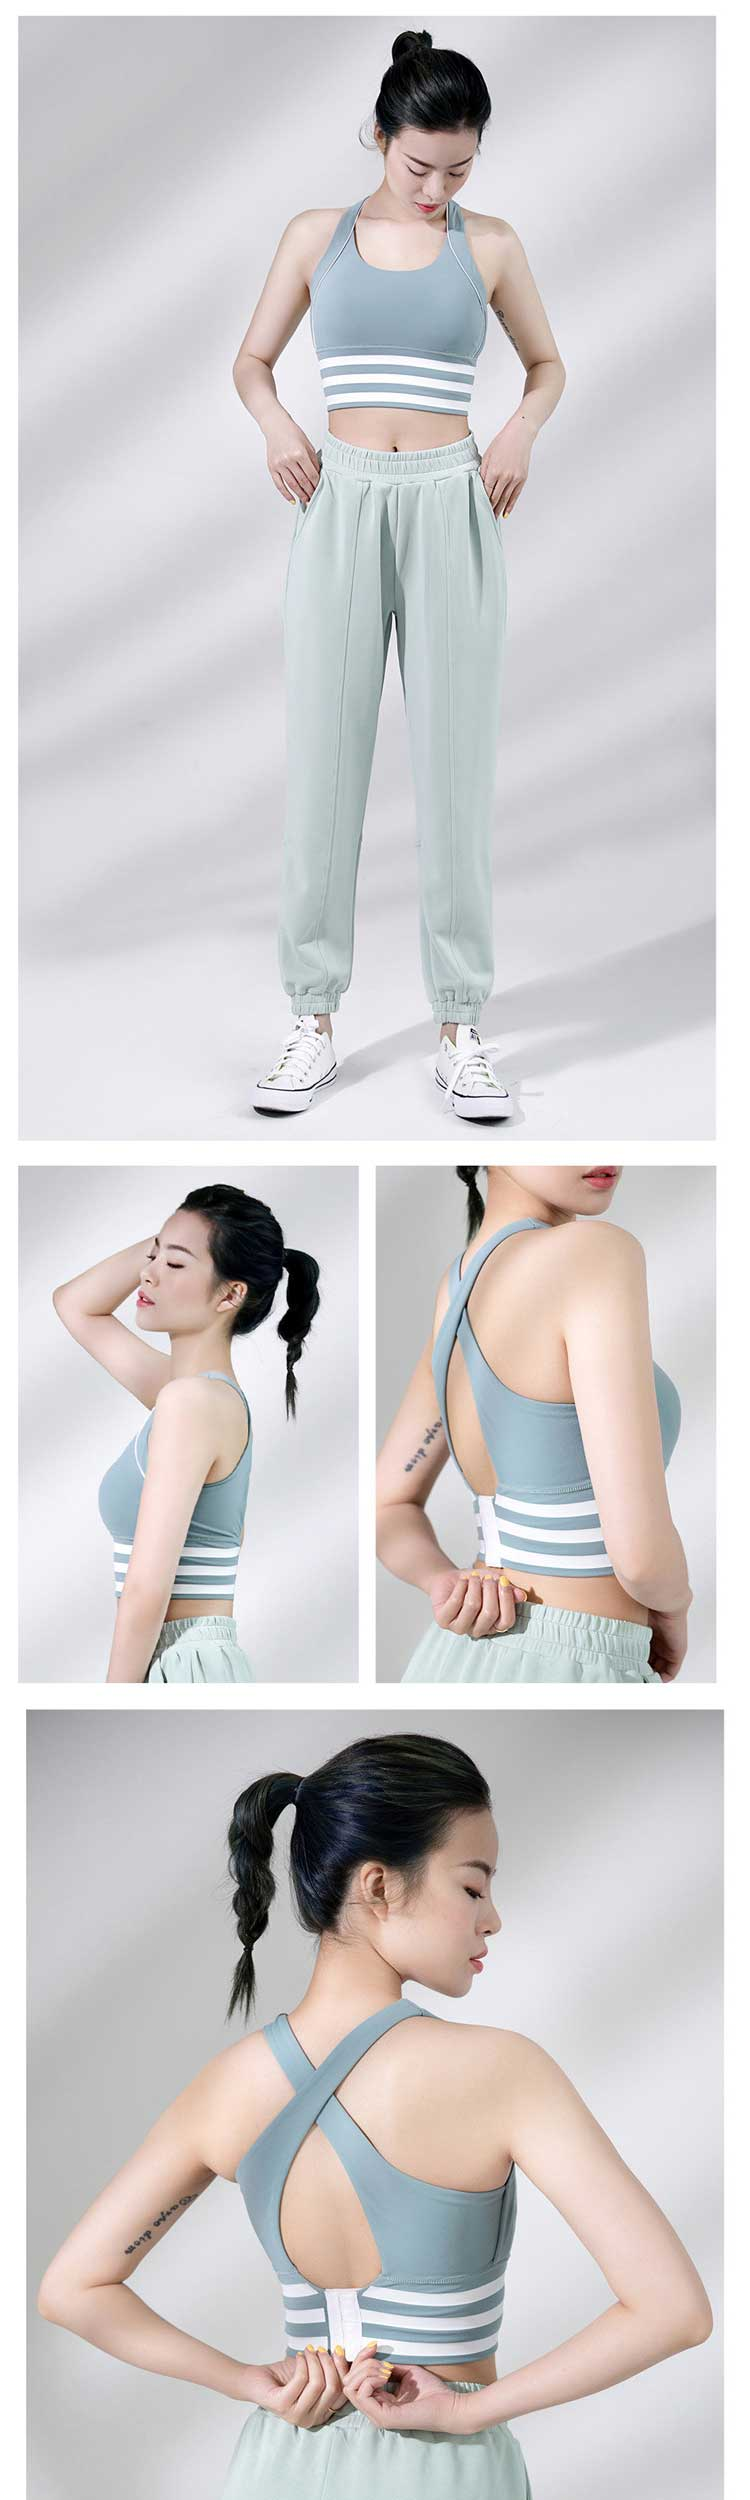 fresh-and--breathable--dressing.-Strong-support-and-full-chest-encircling-design